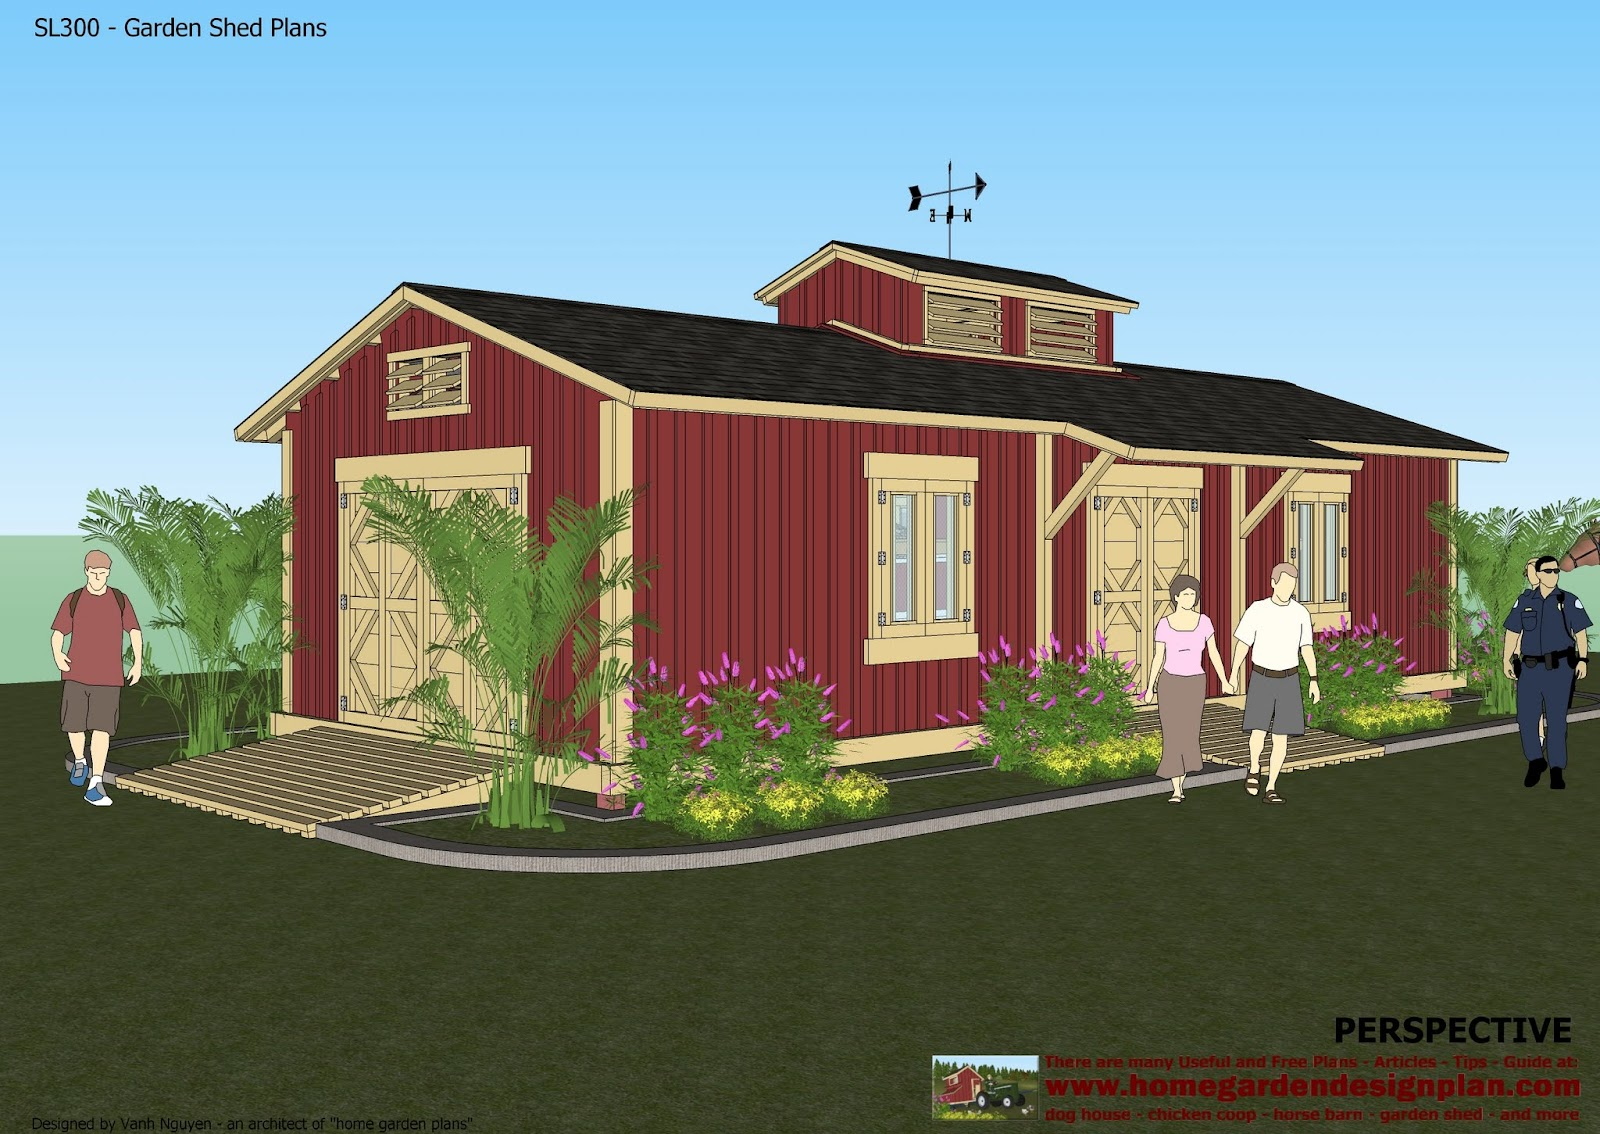 Donn storage shed plans 12x24 8x10x12x14x16x18x20x22x24 for Storage shed house plans